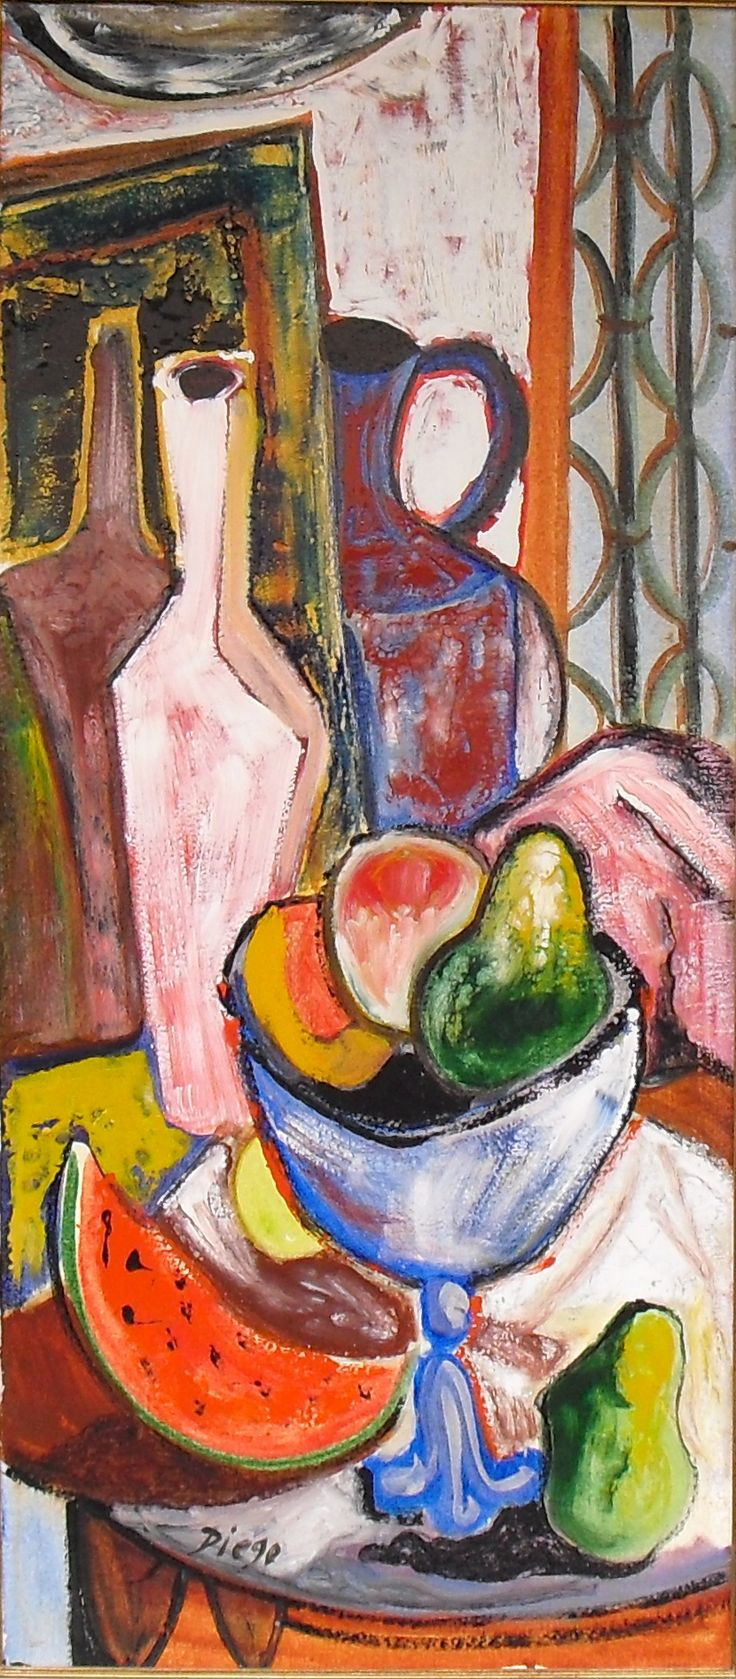 """#DiegoVoci™ - """"Still Life with Pottery"""" using glass paint is more rare than Diego's abstracts. A few incl. this oblong 35""""x16"""" colorful Diego."""